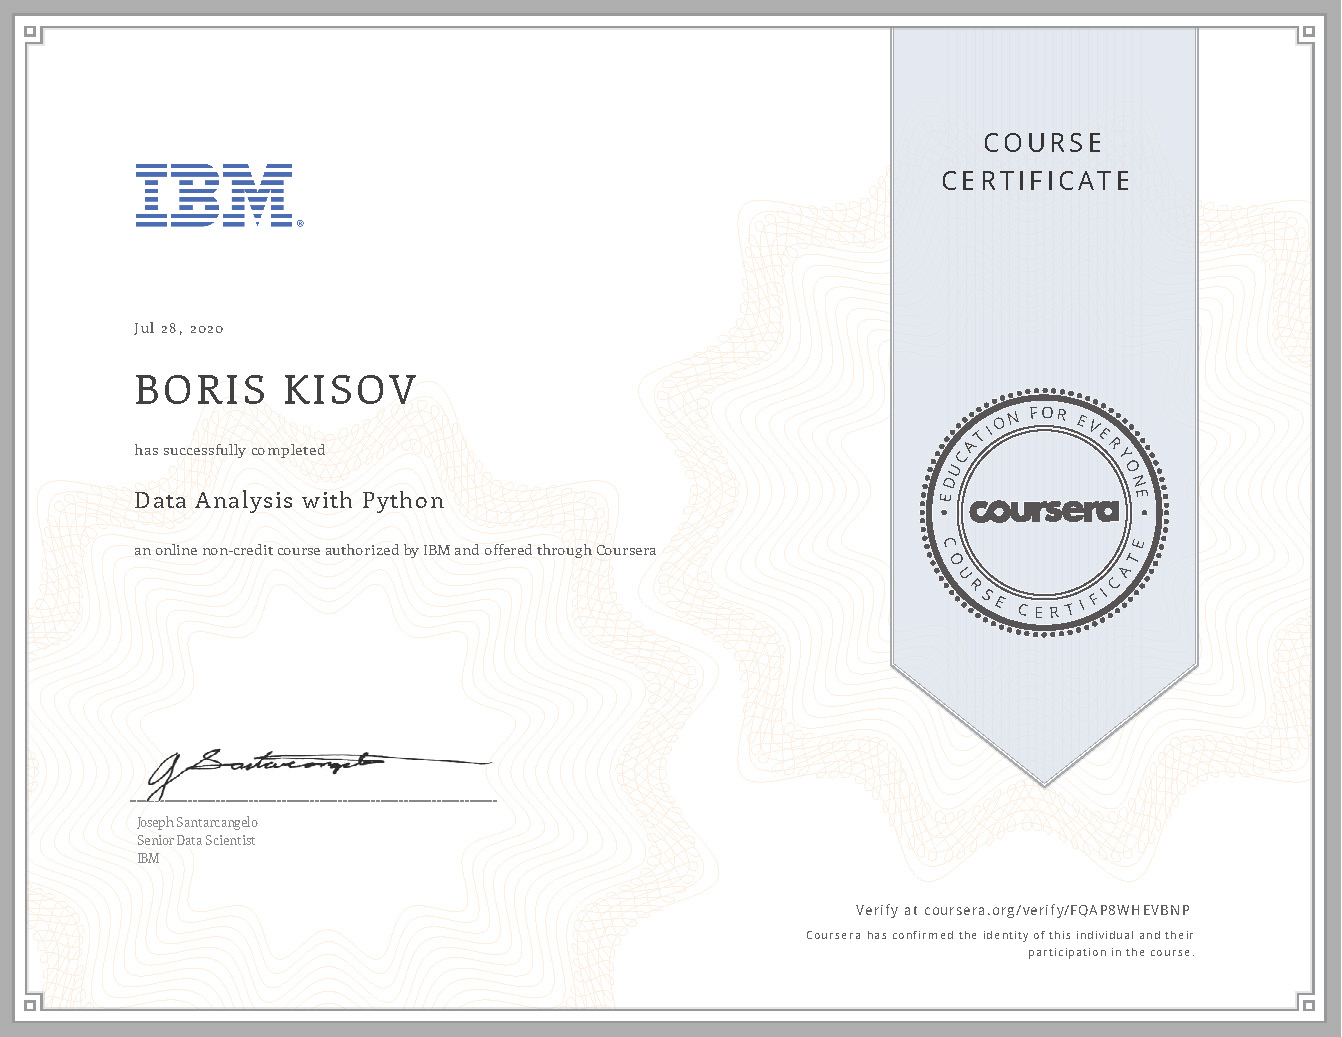 Data Analysis with Python - Certificate